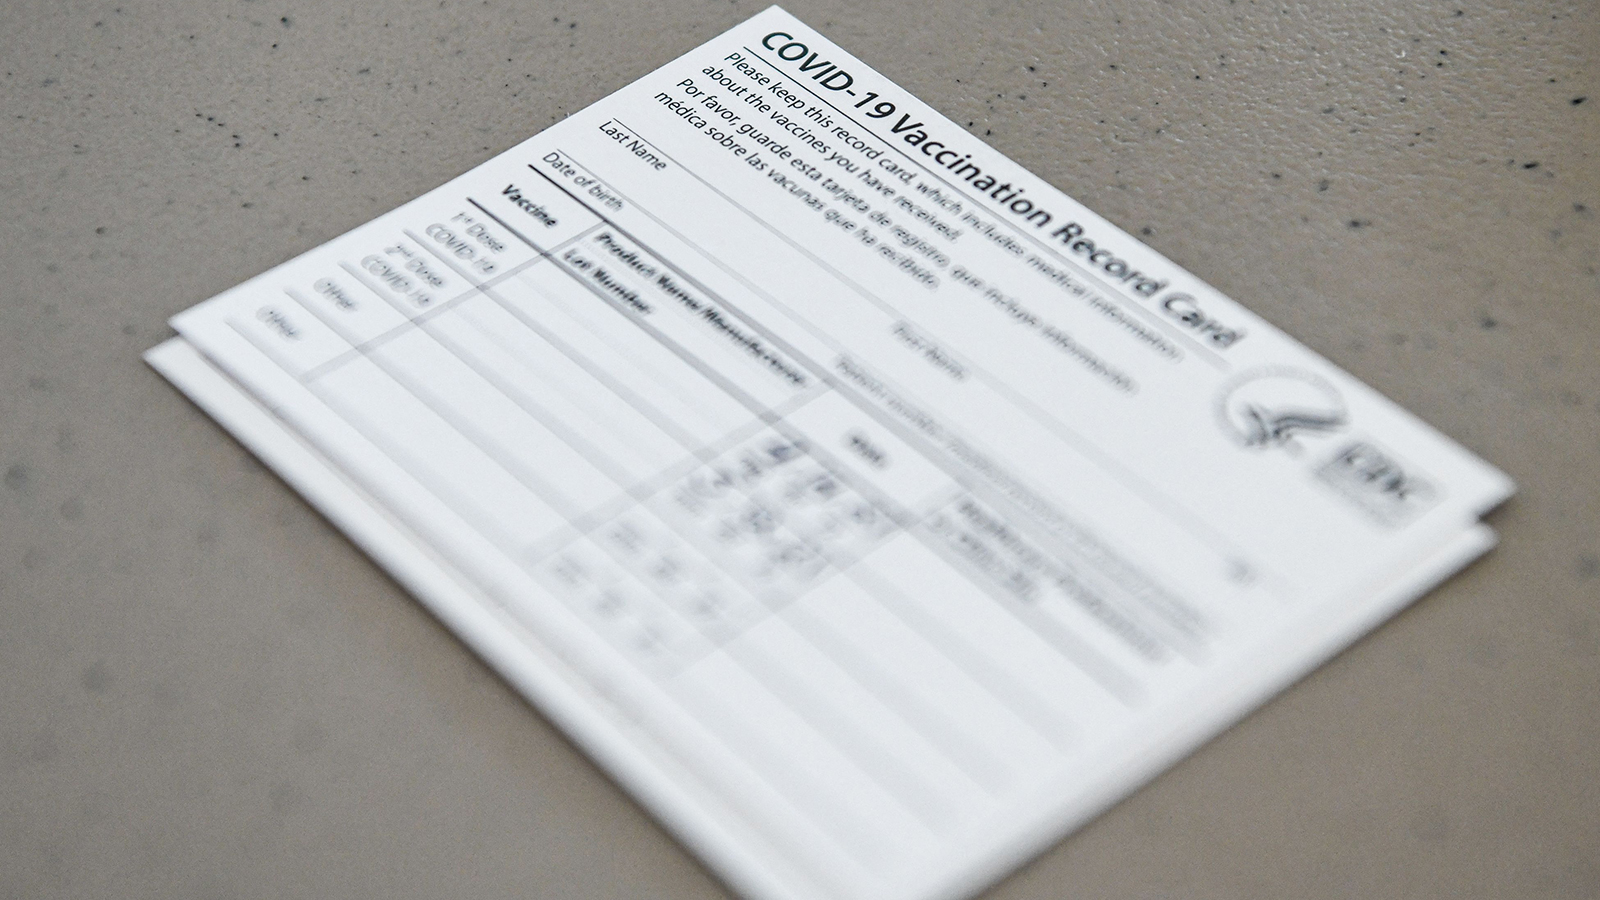 A Covid-19 vaccine record card is seen at Florida Memorial University Vaccination Site in Miami Gardens, Florida on April 14.